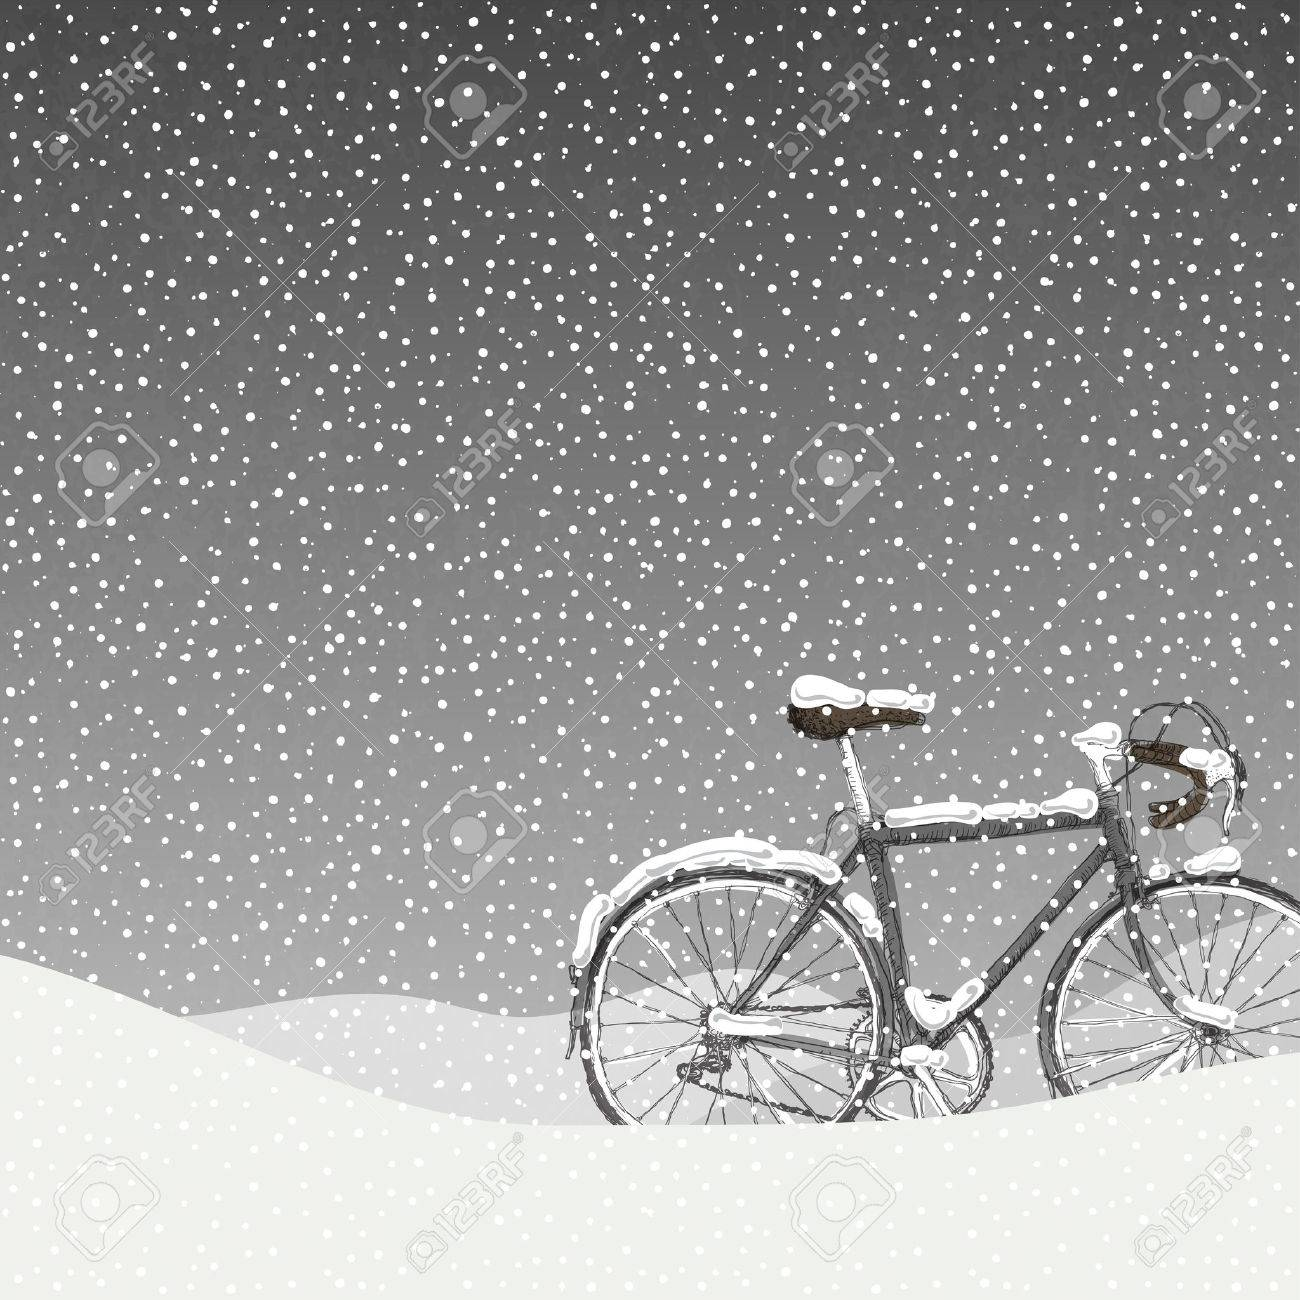 Snow Covered Bicycle Illustration, Calm Winter Scene - 34371520